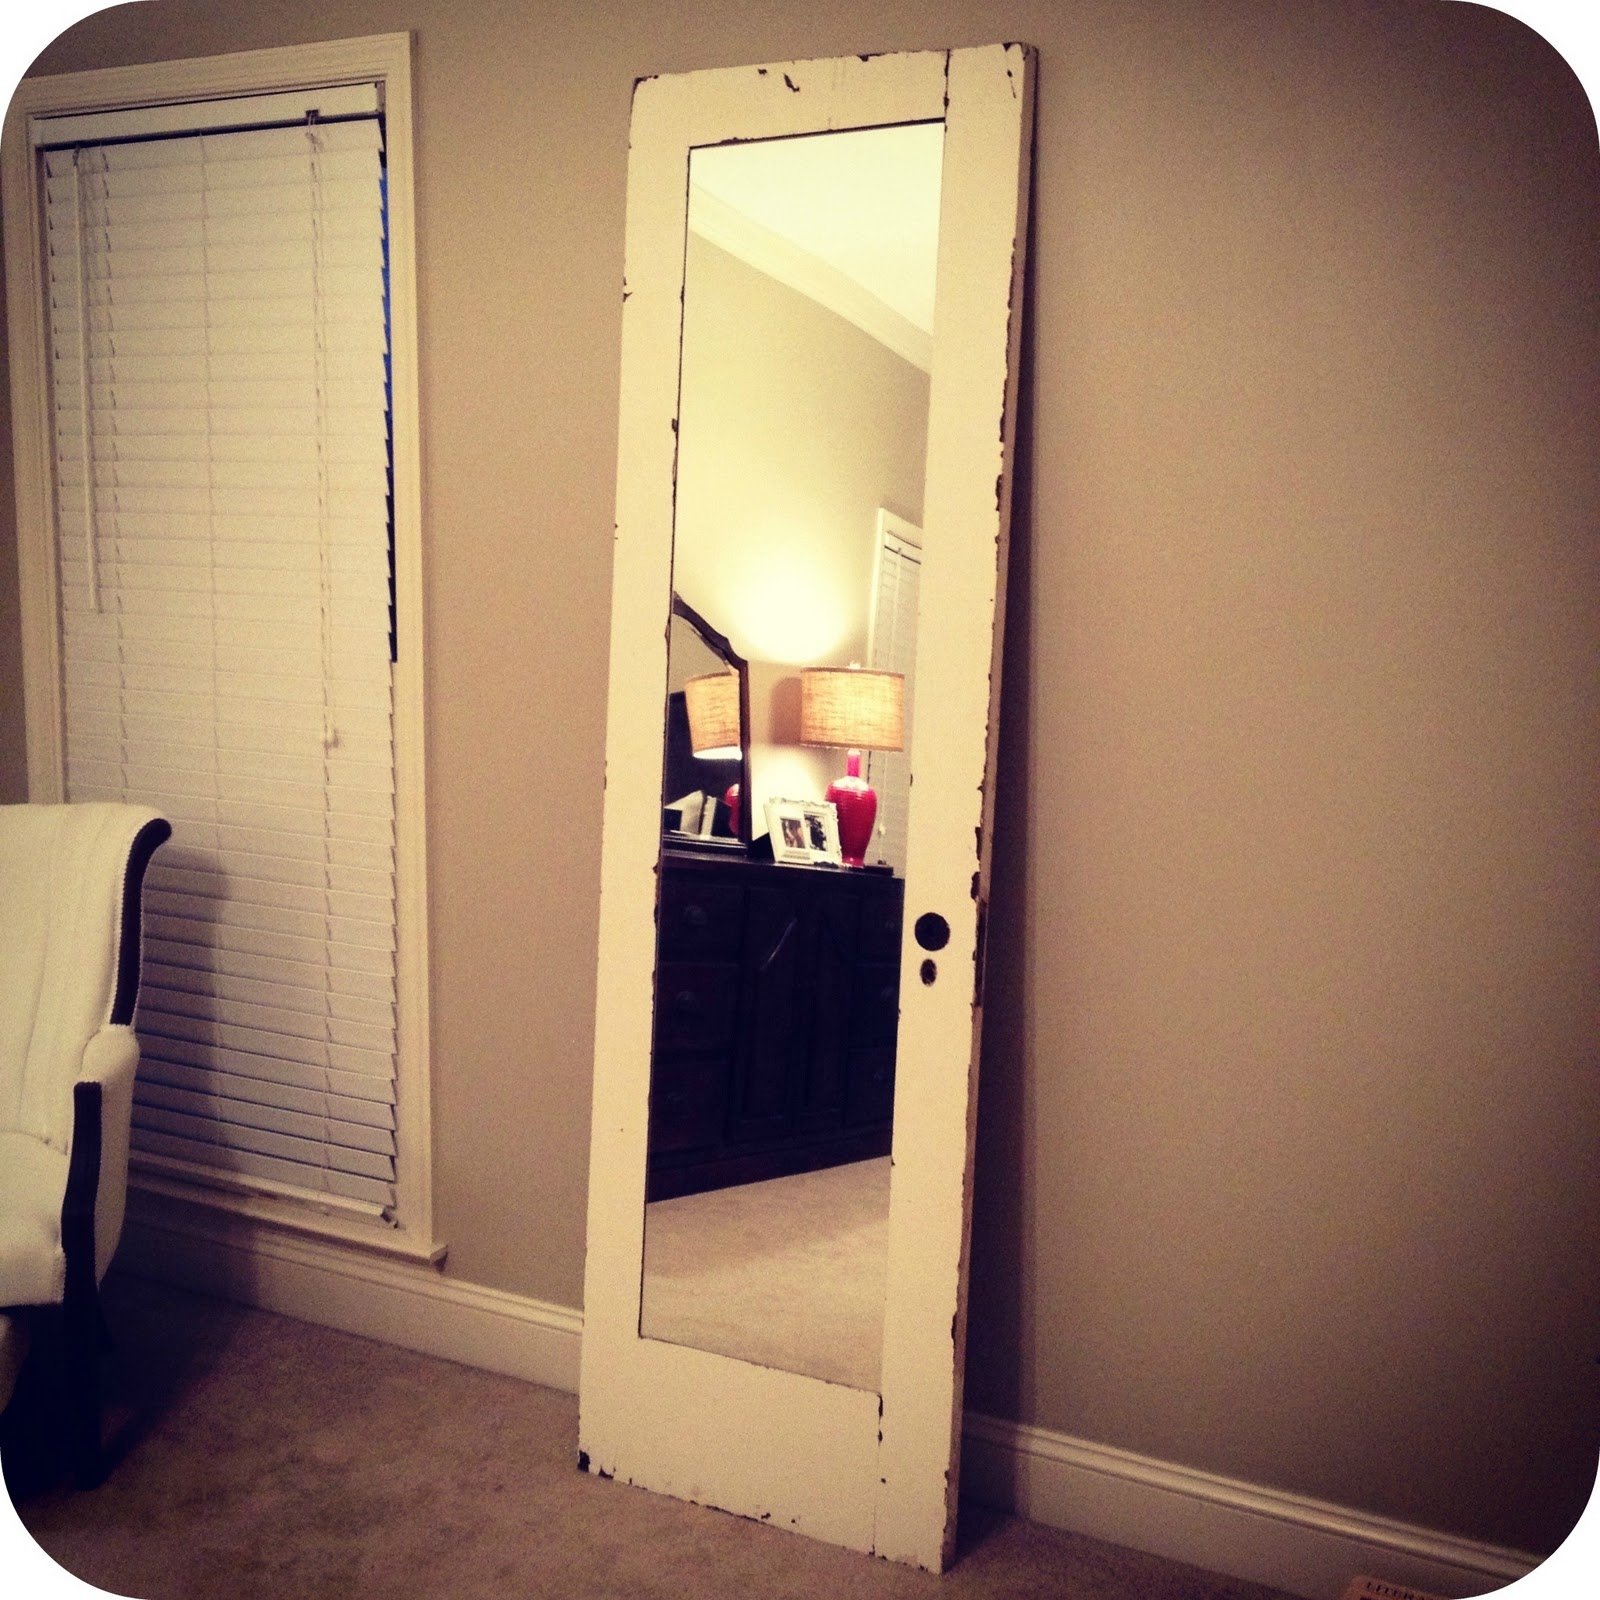 file of mirrors jewelry uk hanging length over full info door fresh mirror the doors debonair